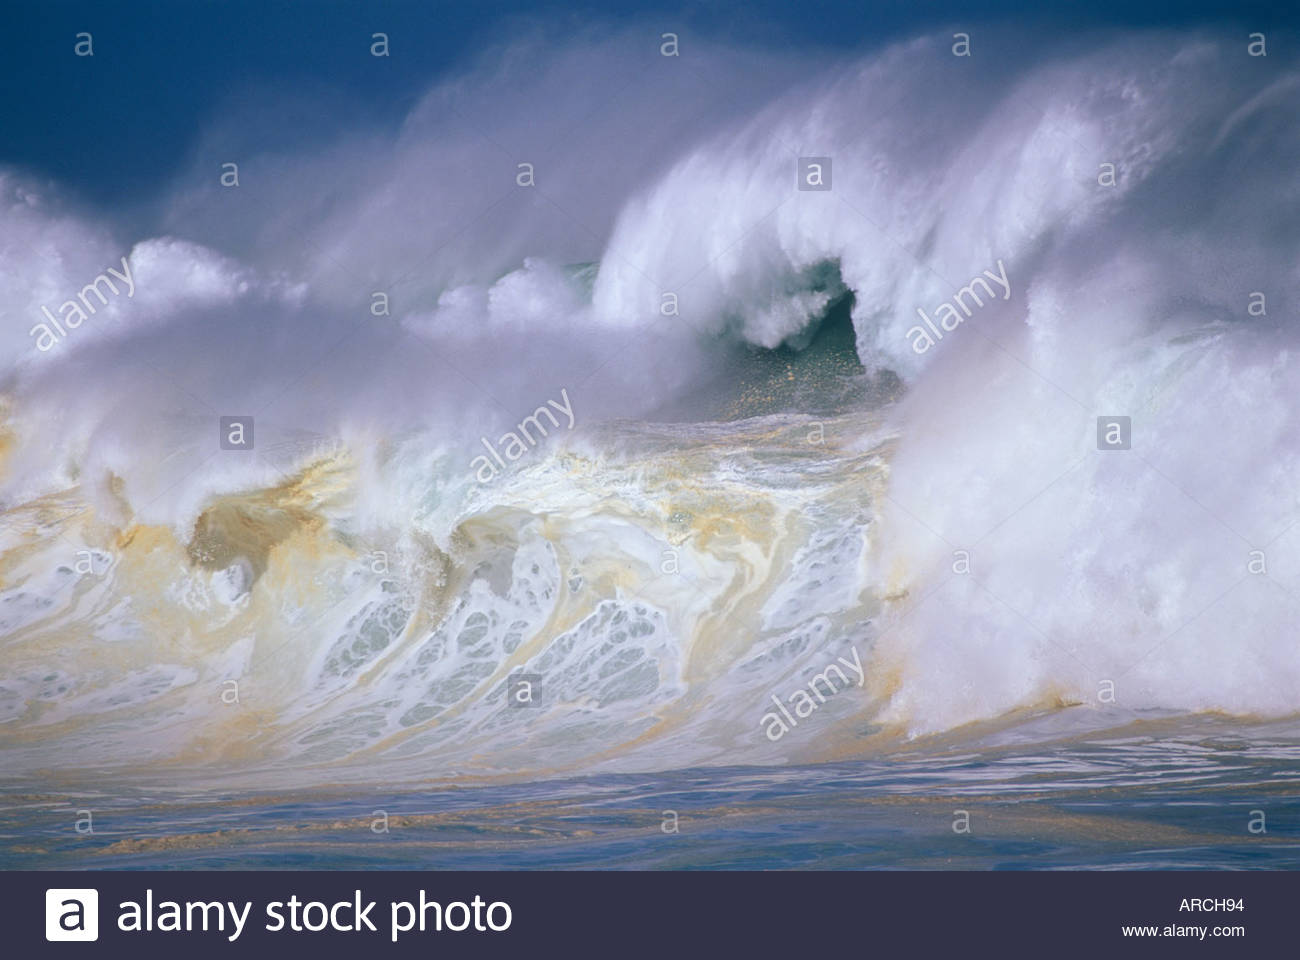 Record high 35 foot surf due to El Nino on north shore of island of Oahu in the state of Hawaii USAStock Photo